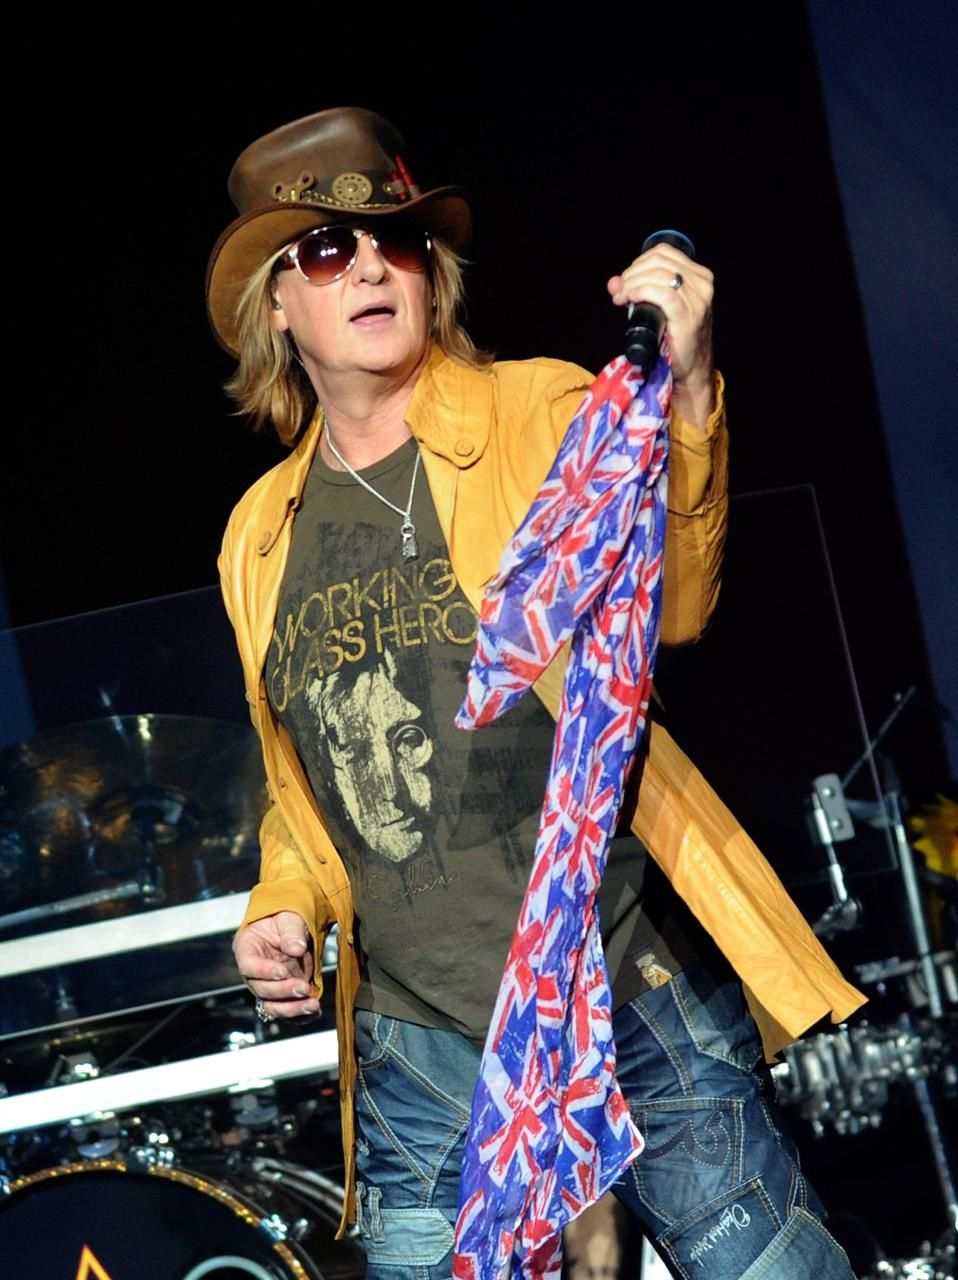 Joe Elliott, Def Leppard - Las Vegas, NV - March 22 2013 - Photo by David Becker - Getty